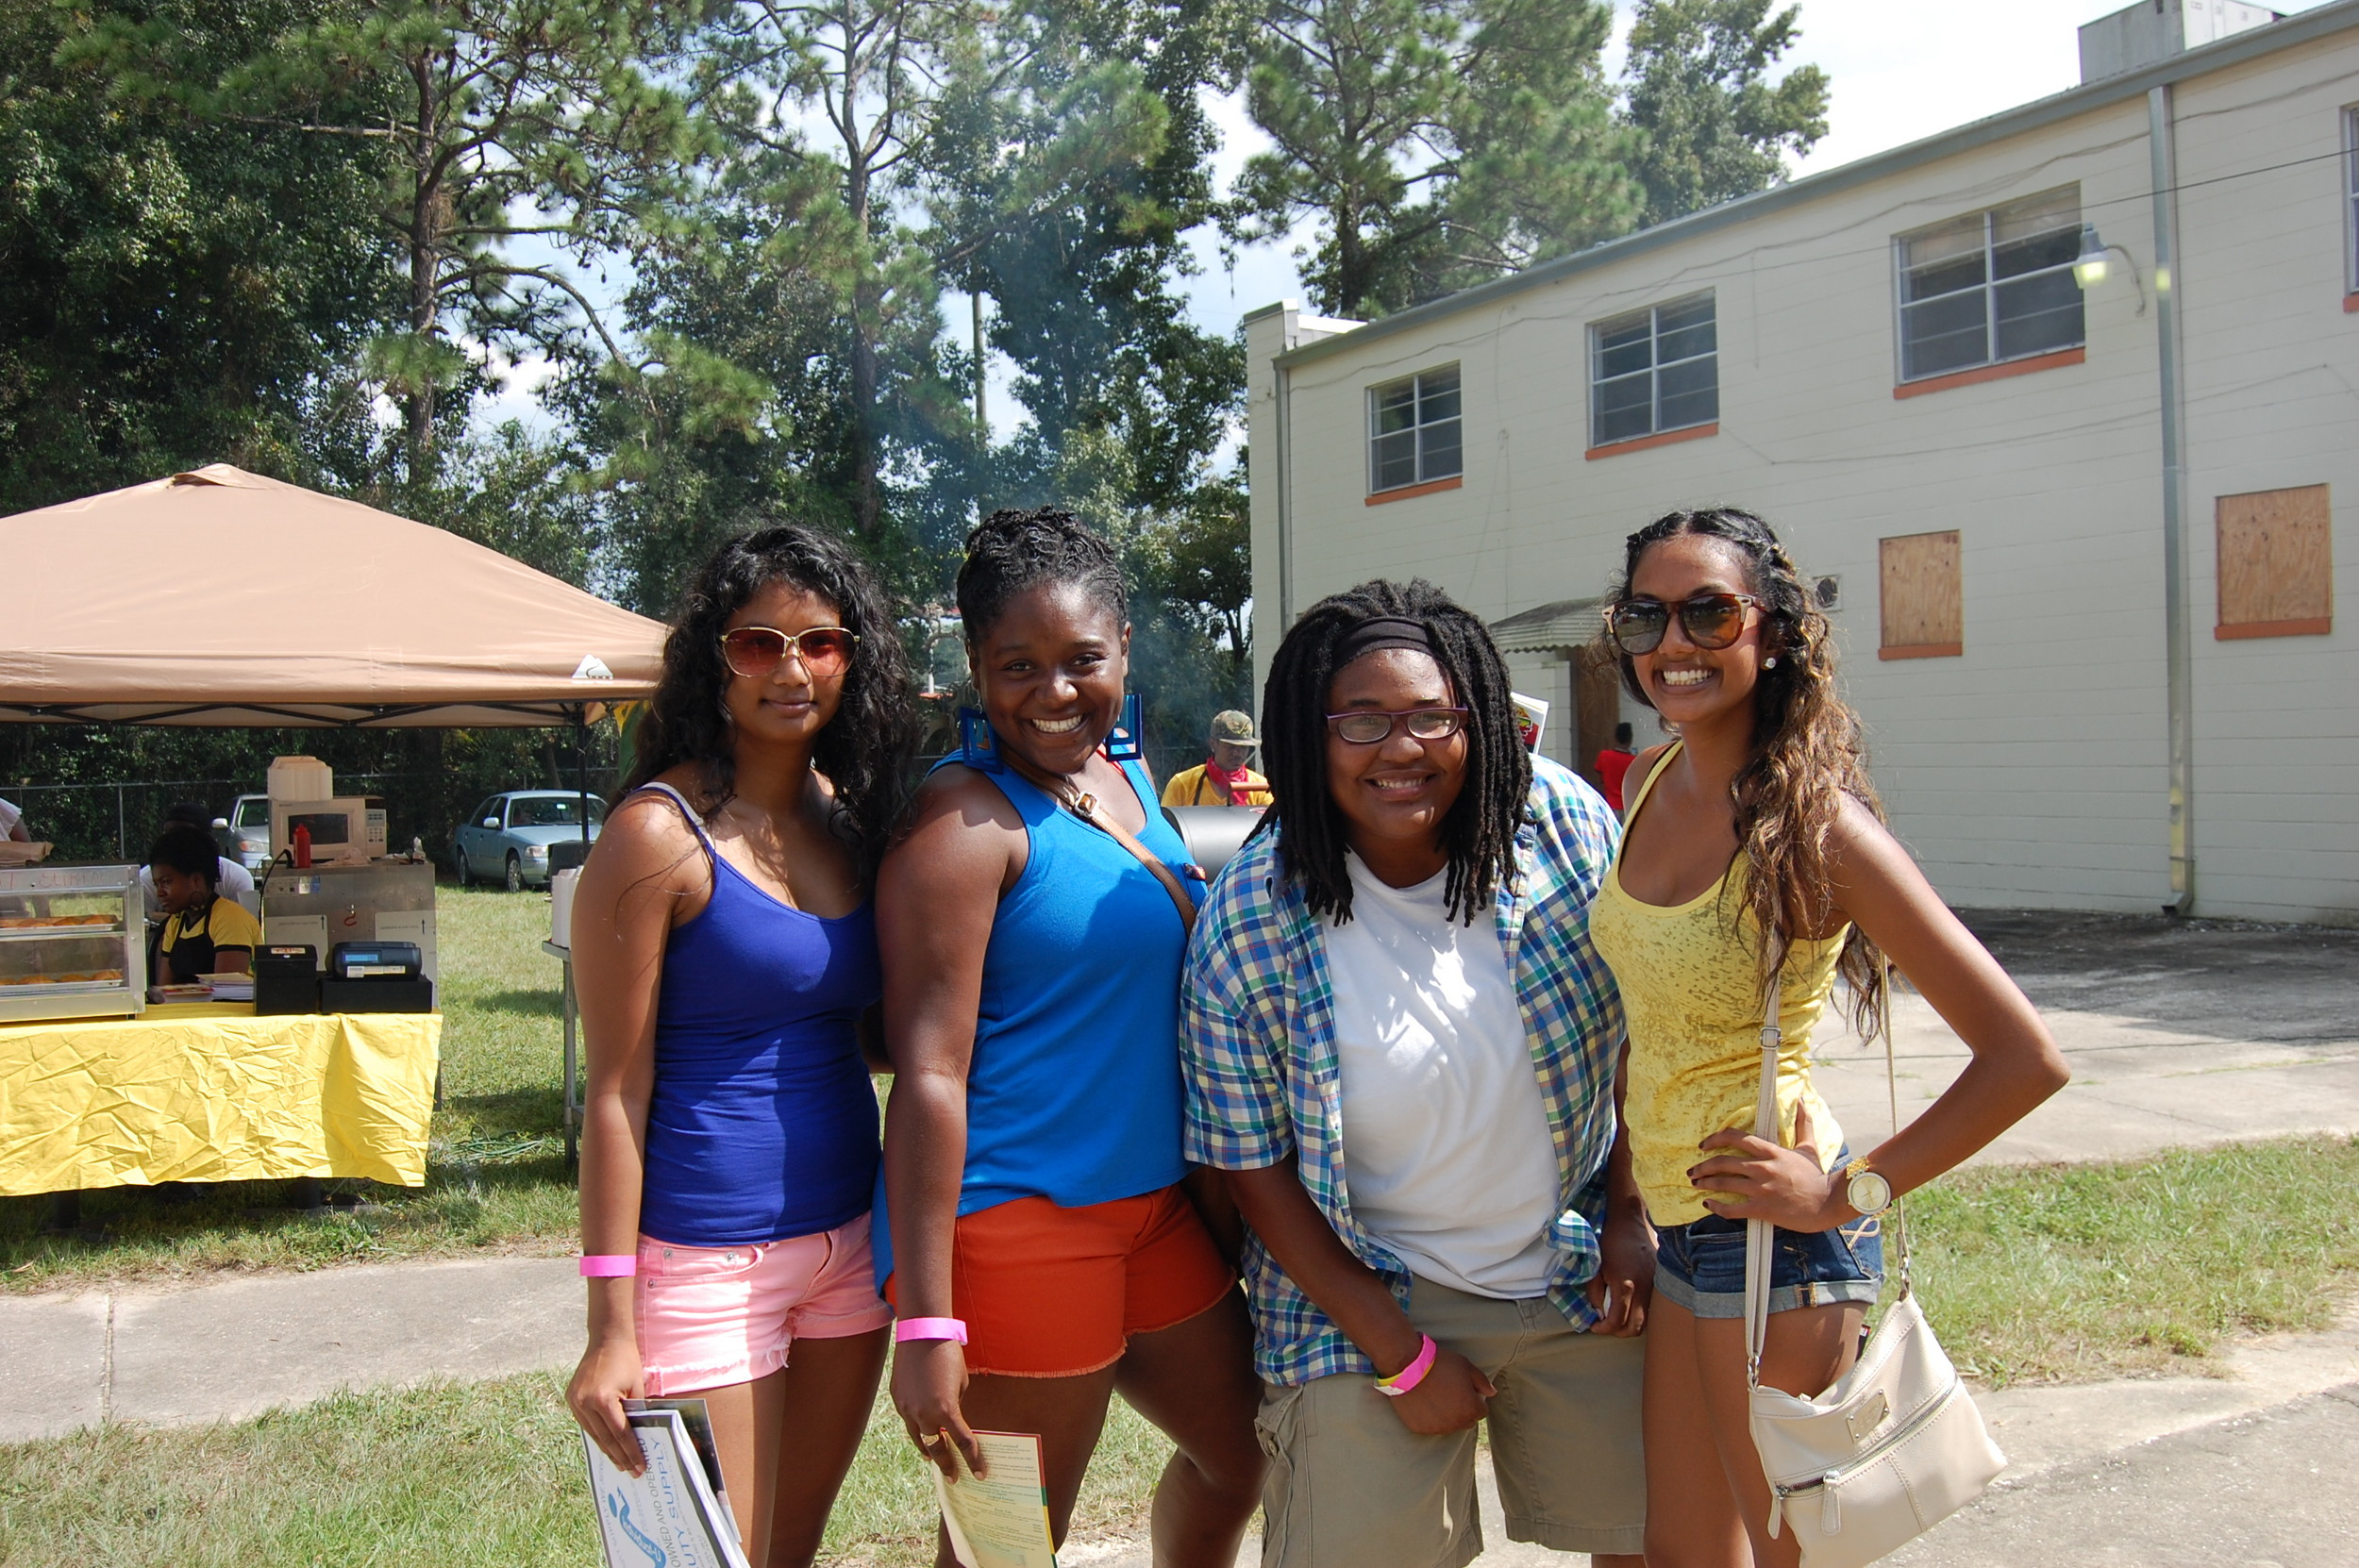 Regian Ramdass, Onie Thomas, Qierra Brown, Evadne Ramdass